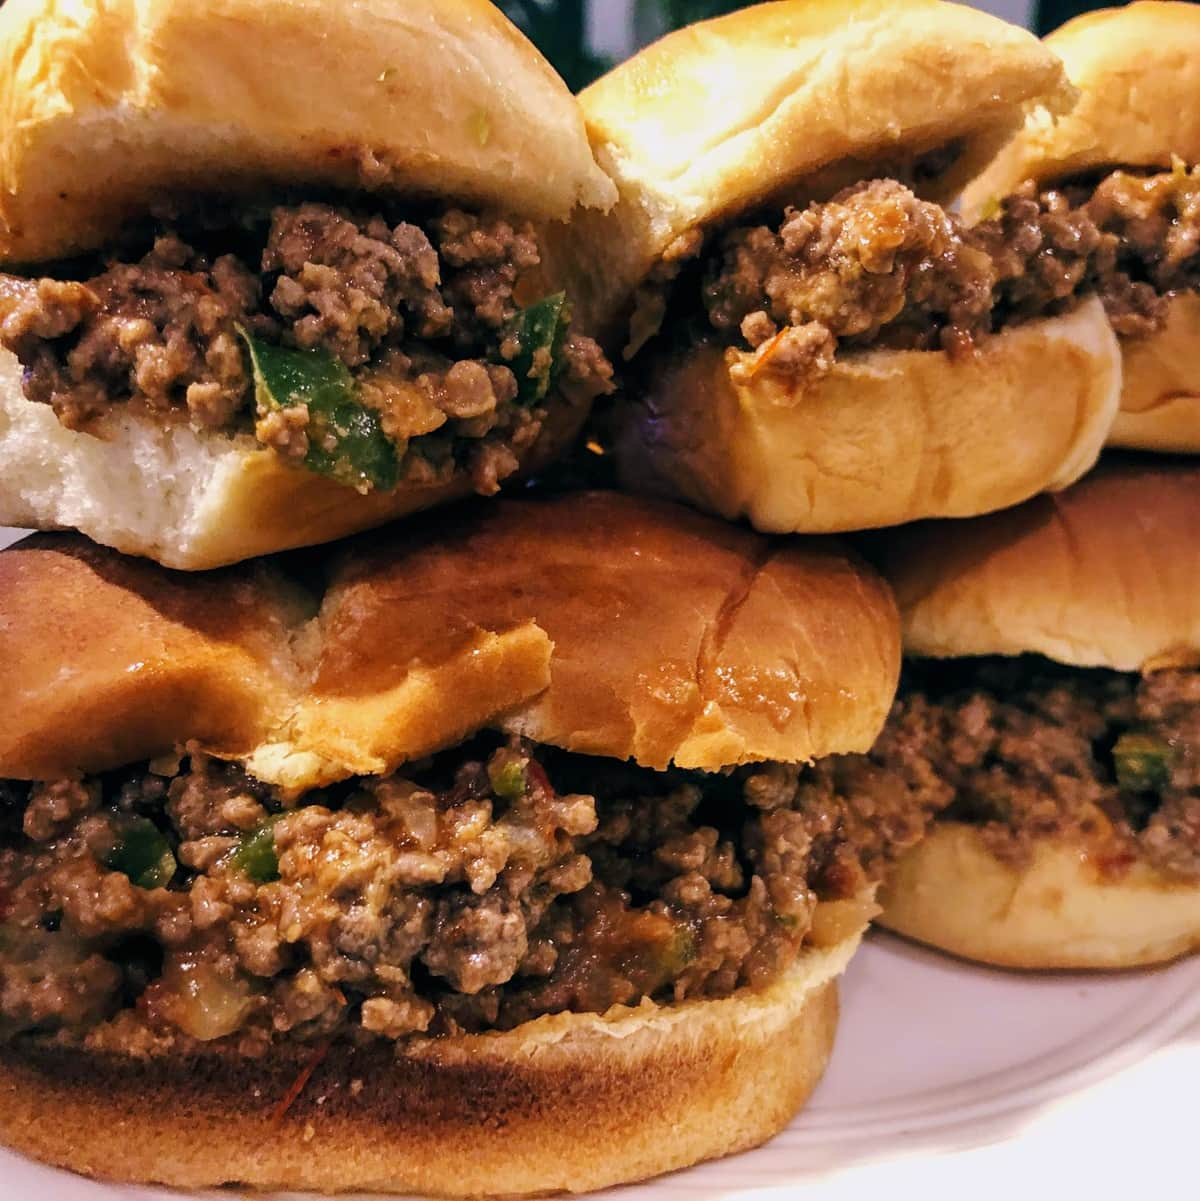 Plate of 6 Sloppy Joe sandwiches, stacked on top of each other